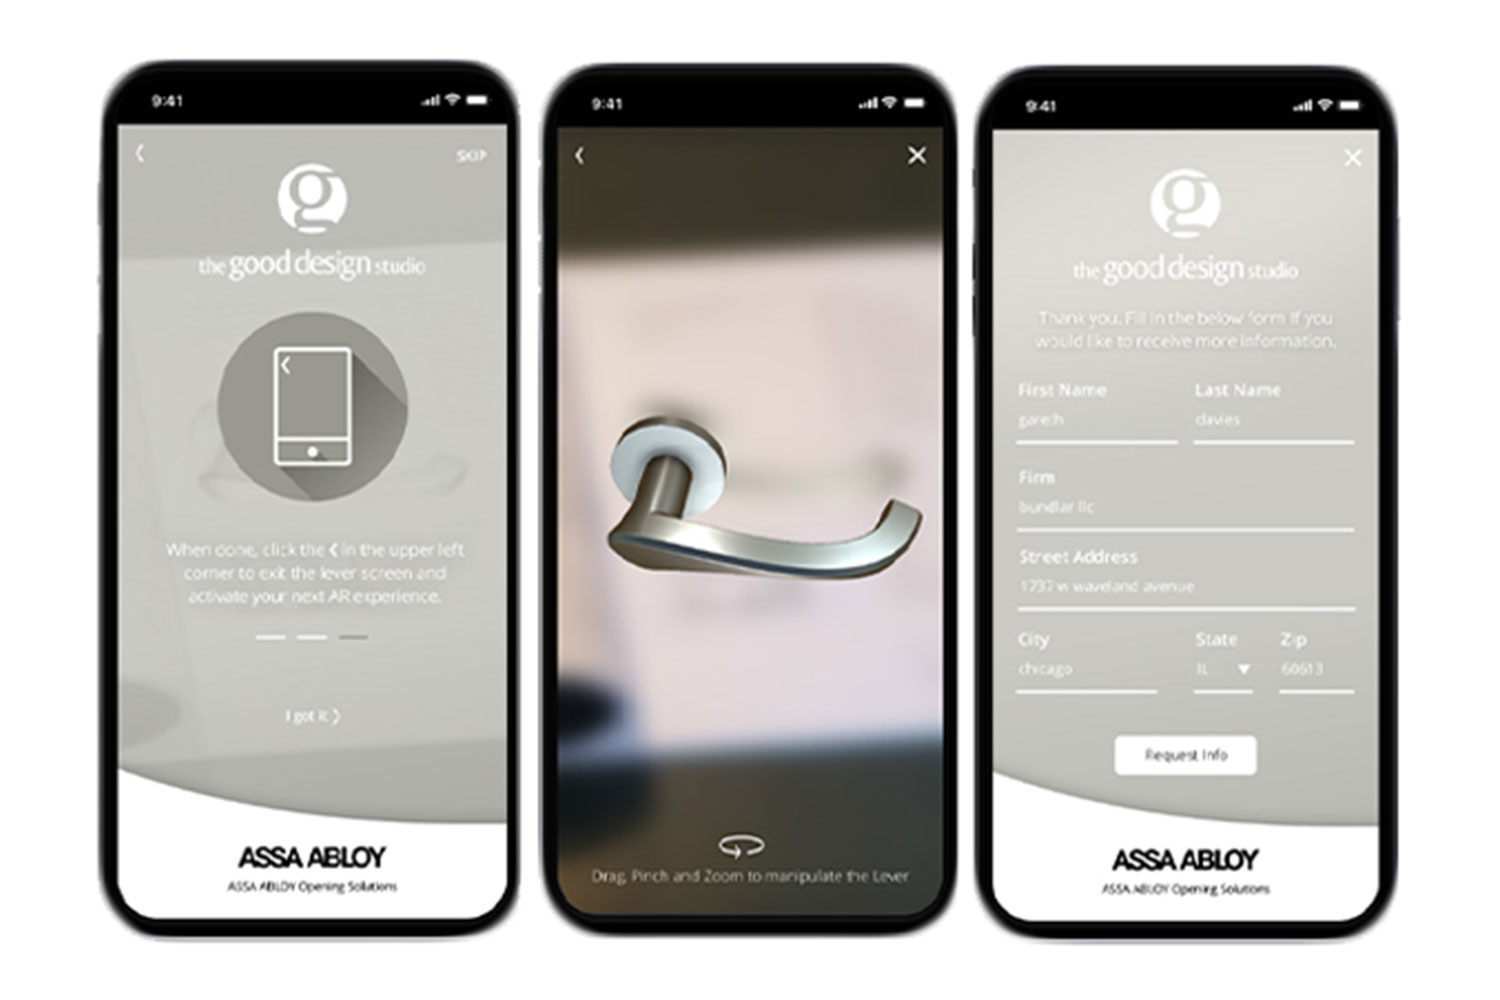 mobile view of assa abloy app